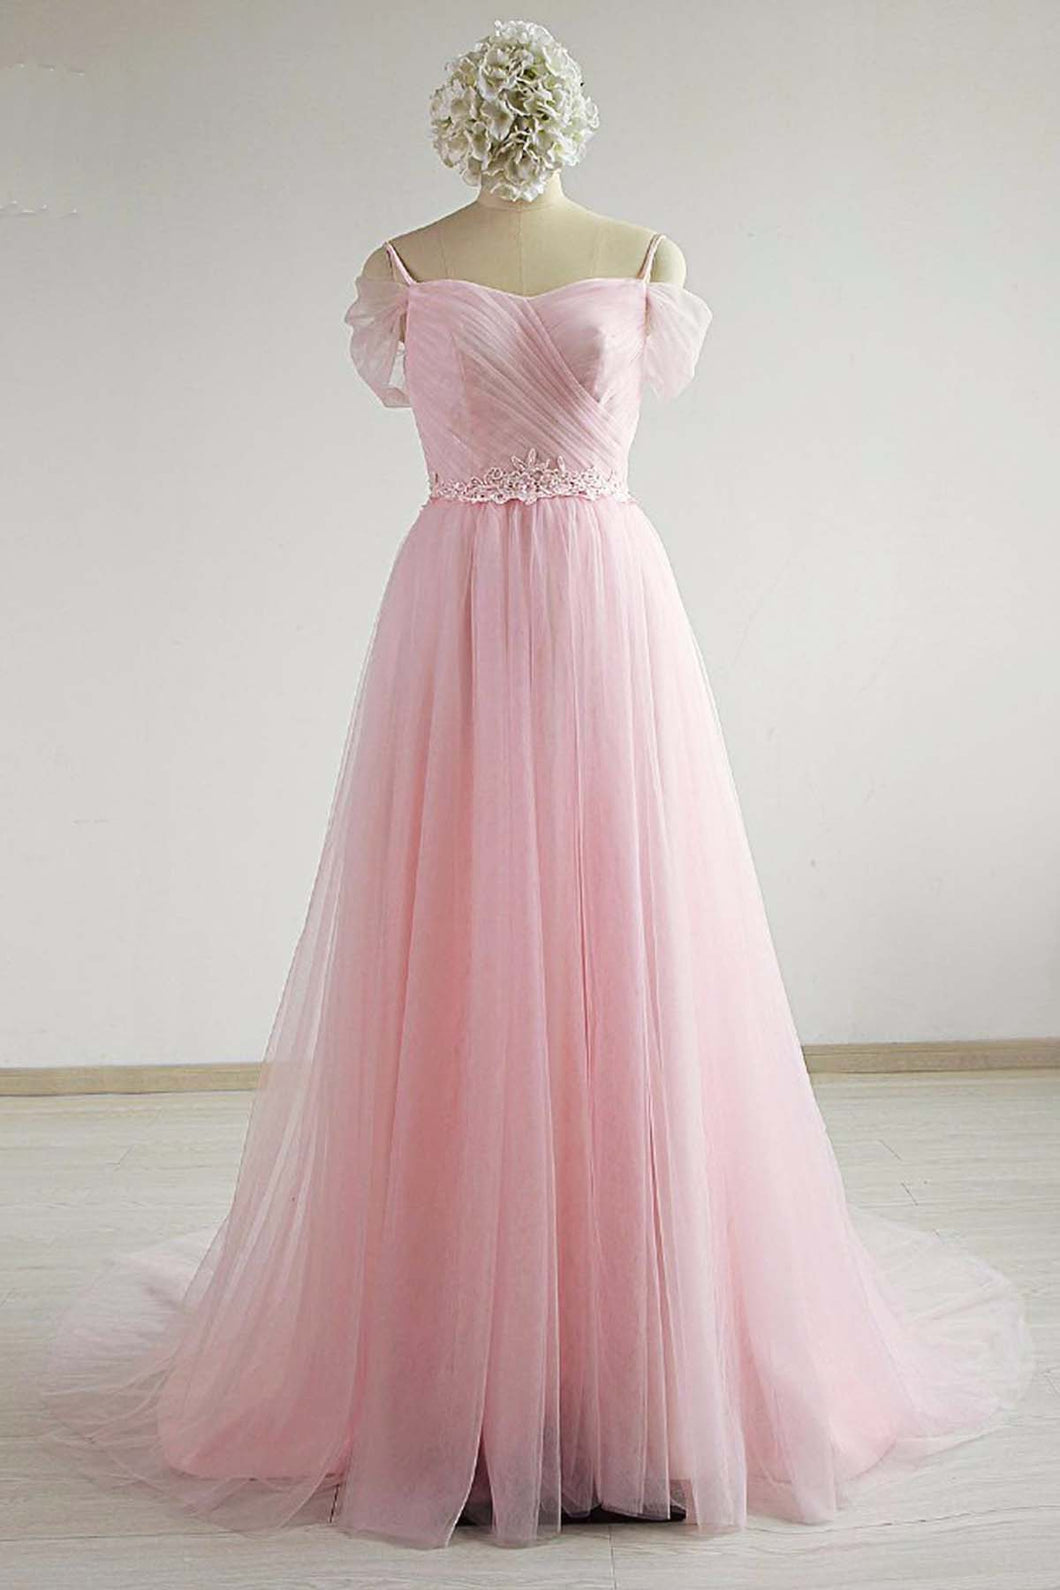 Pink Tulle Sweetheart Neck Cap Sleeve Long Prom Dress, Graduation Dress